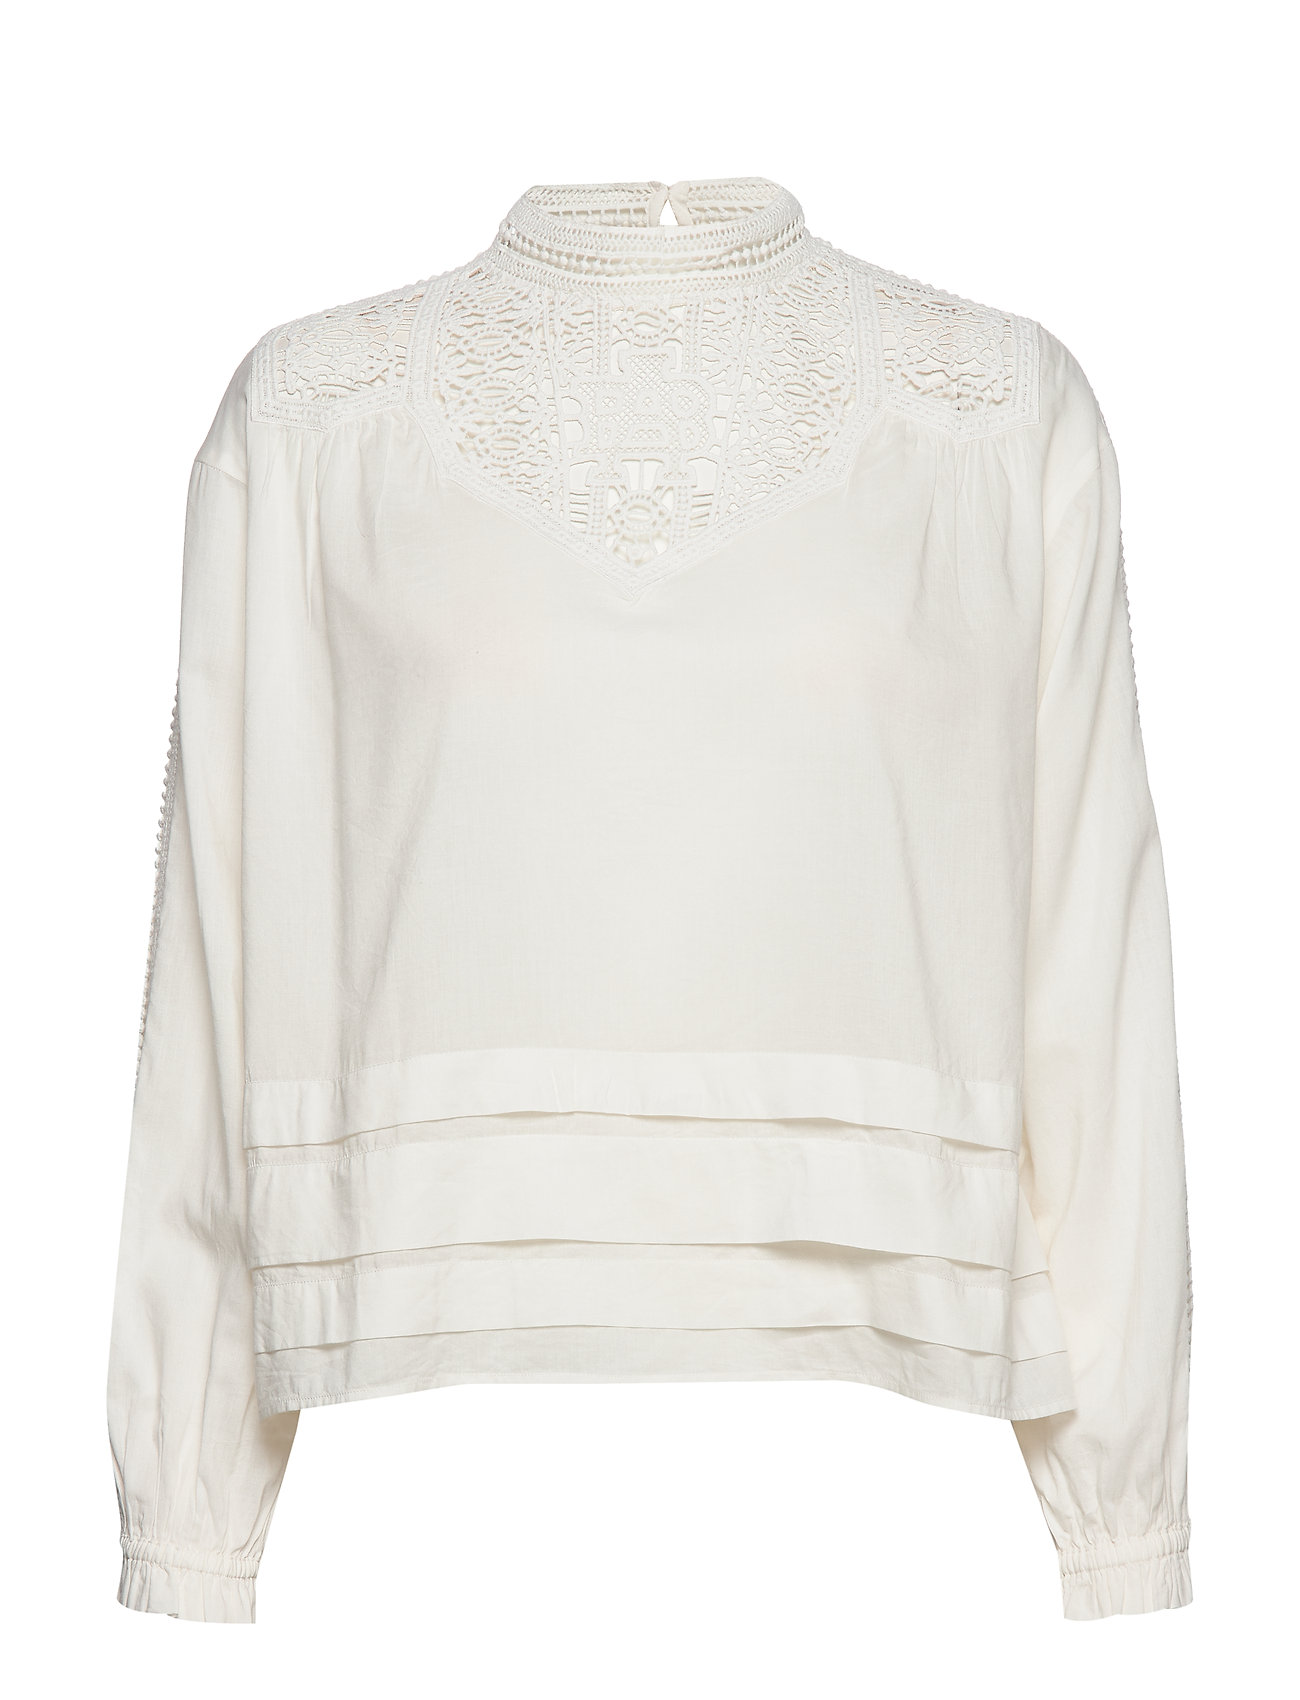 Scotch & Soda Feminine drapey top with special lace detailing - OFF WHITE